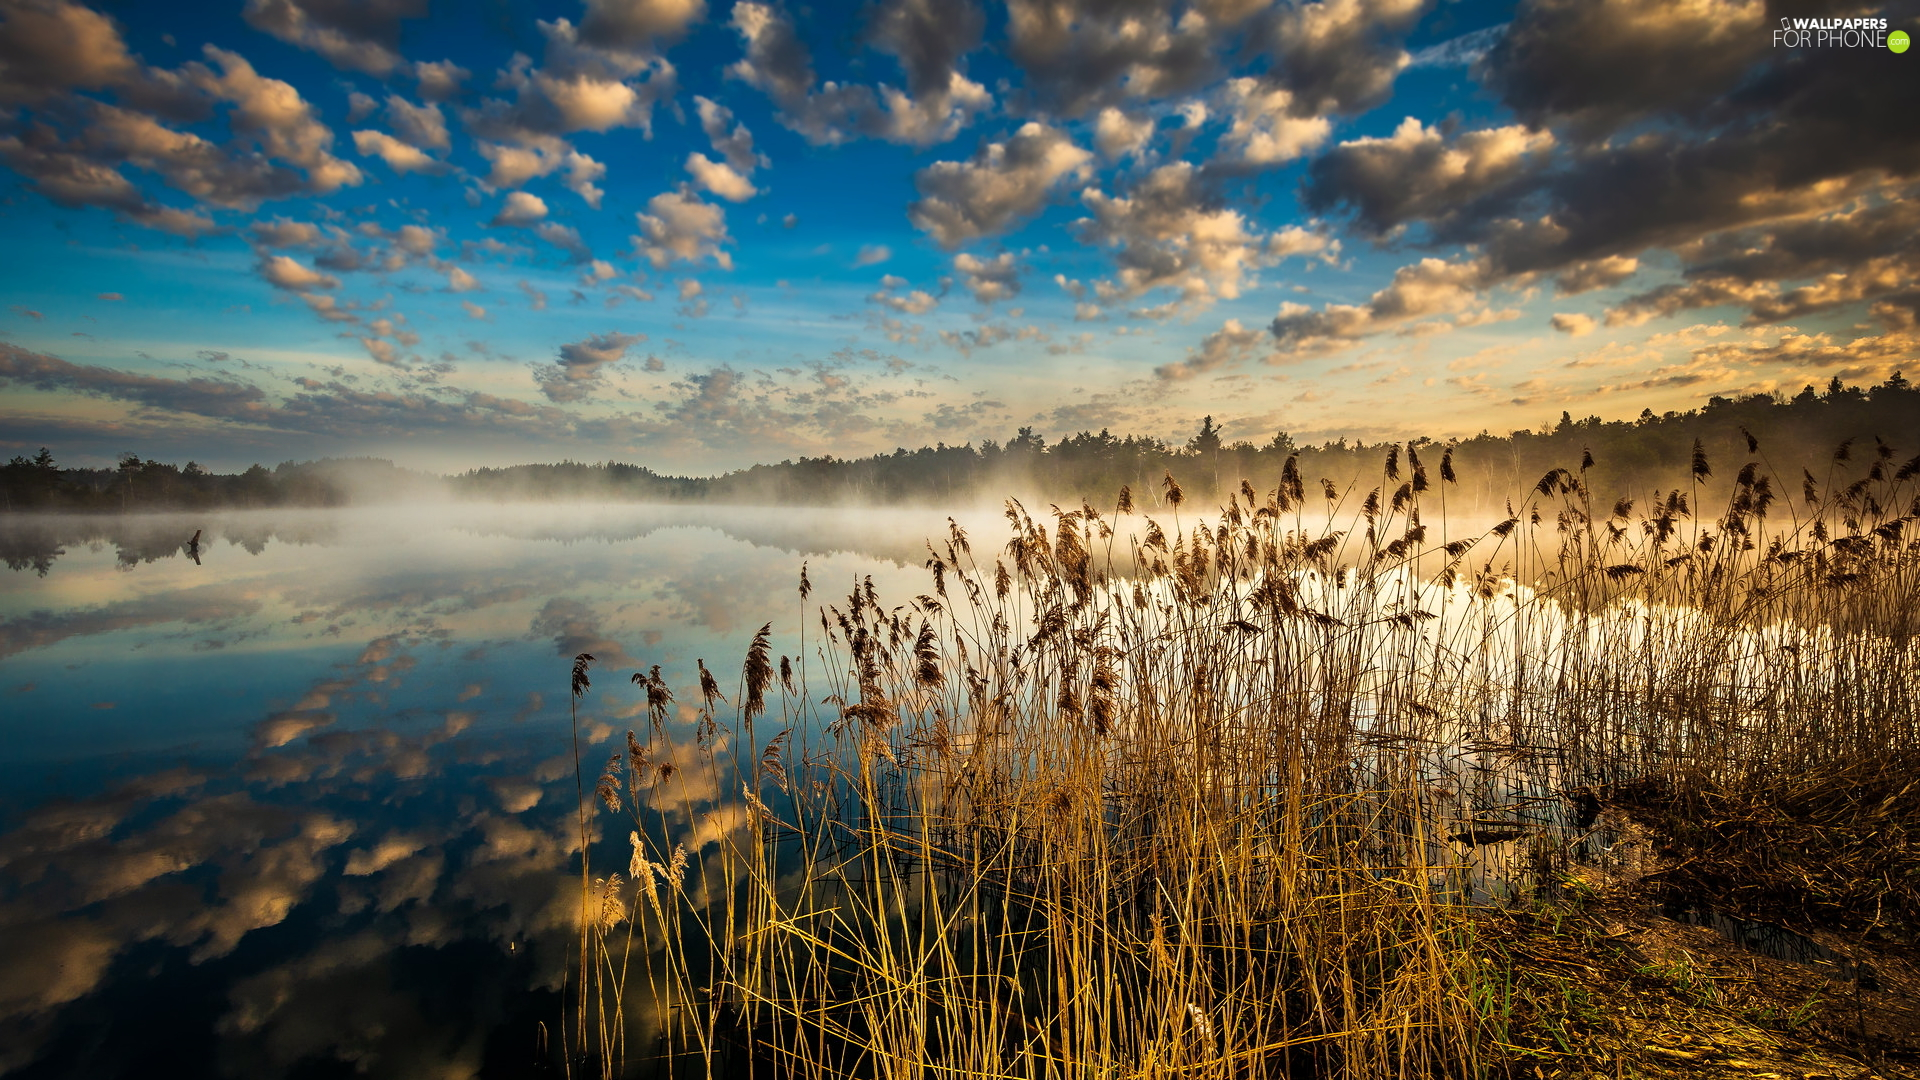 Fog, grass, reflection, lake, rushes, clouds, Sunrise